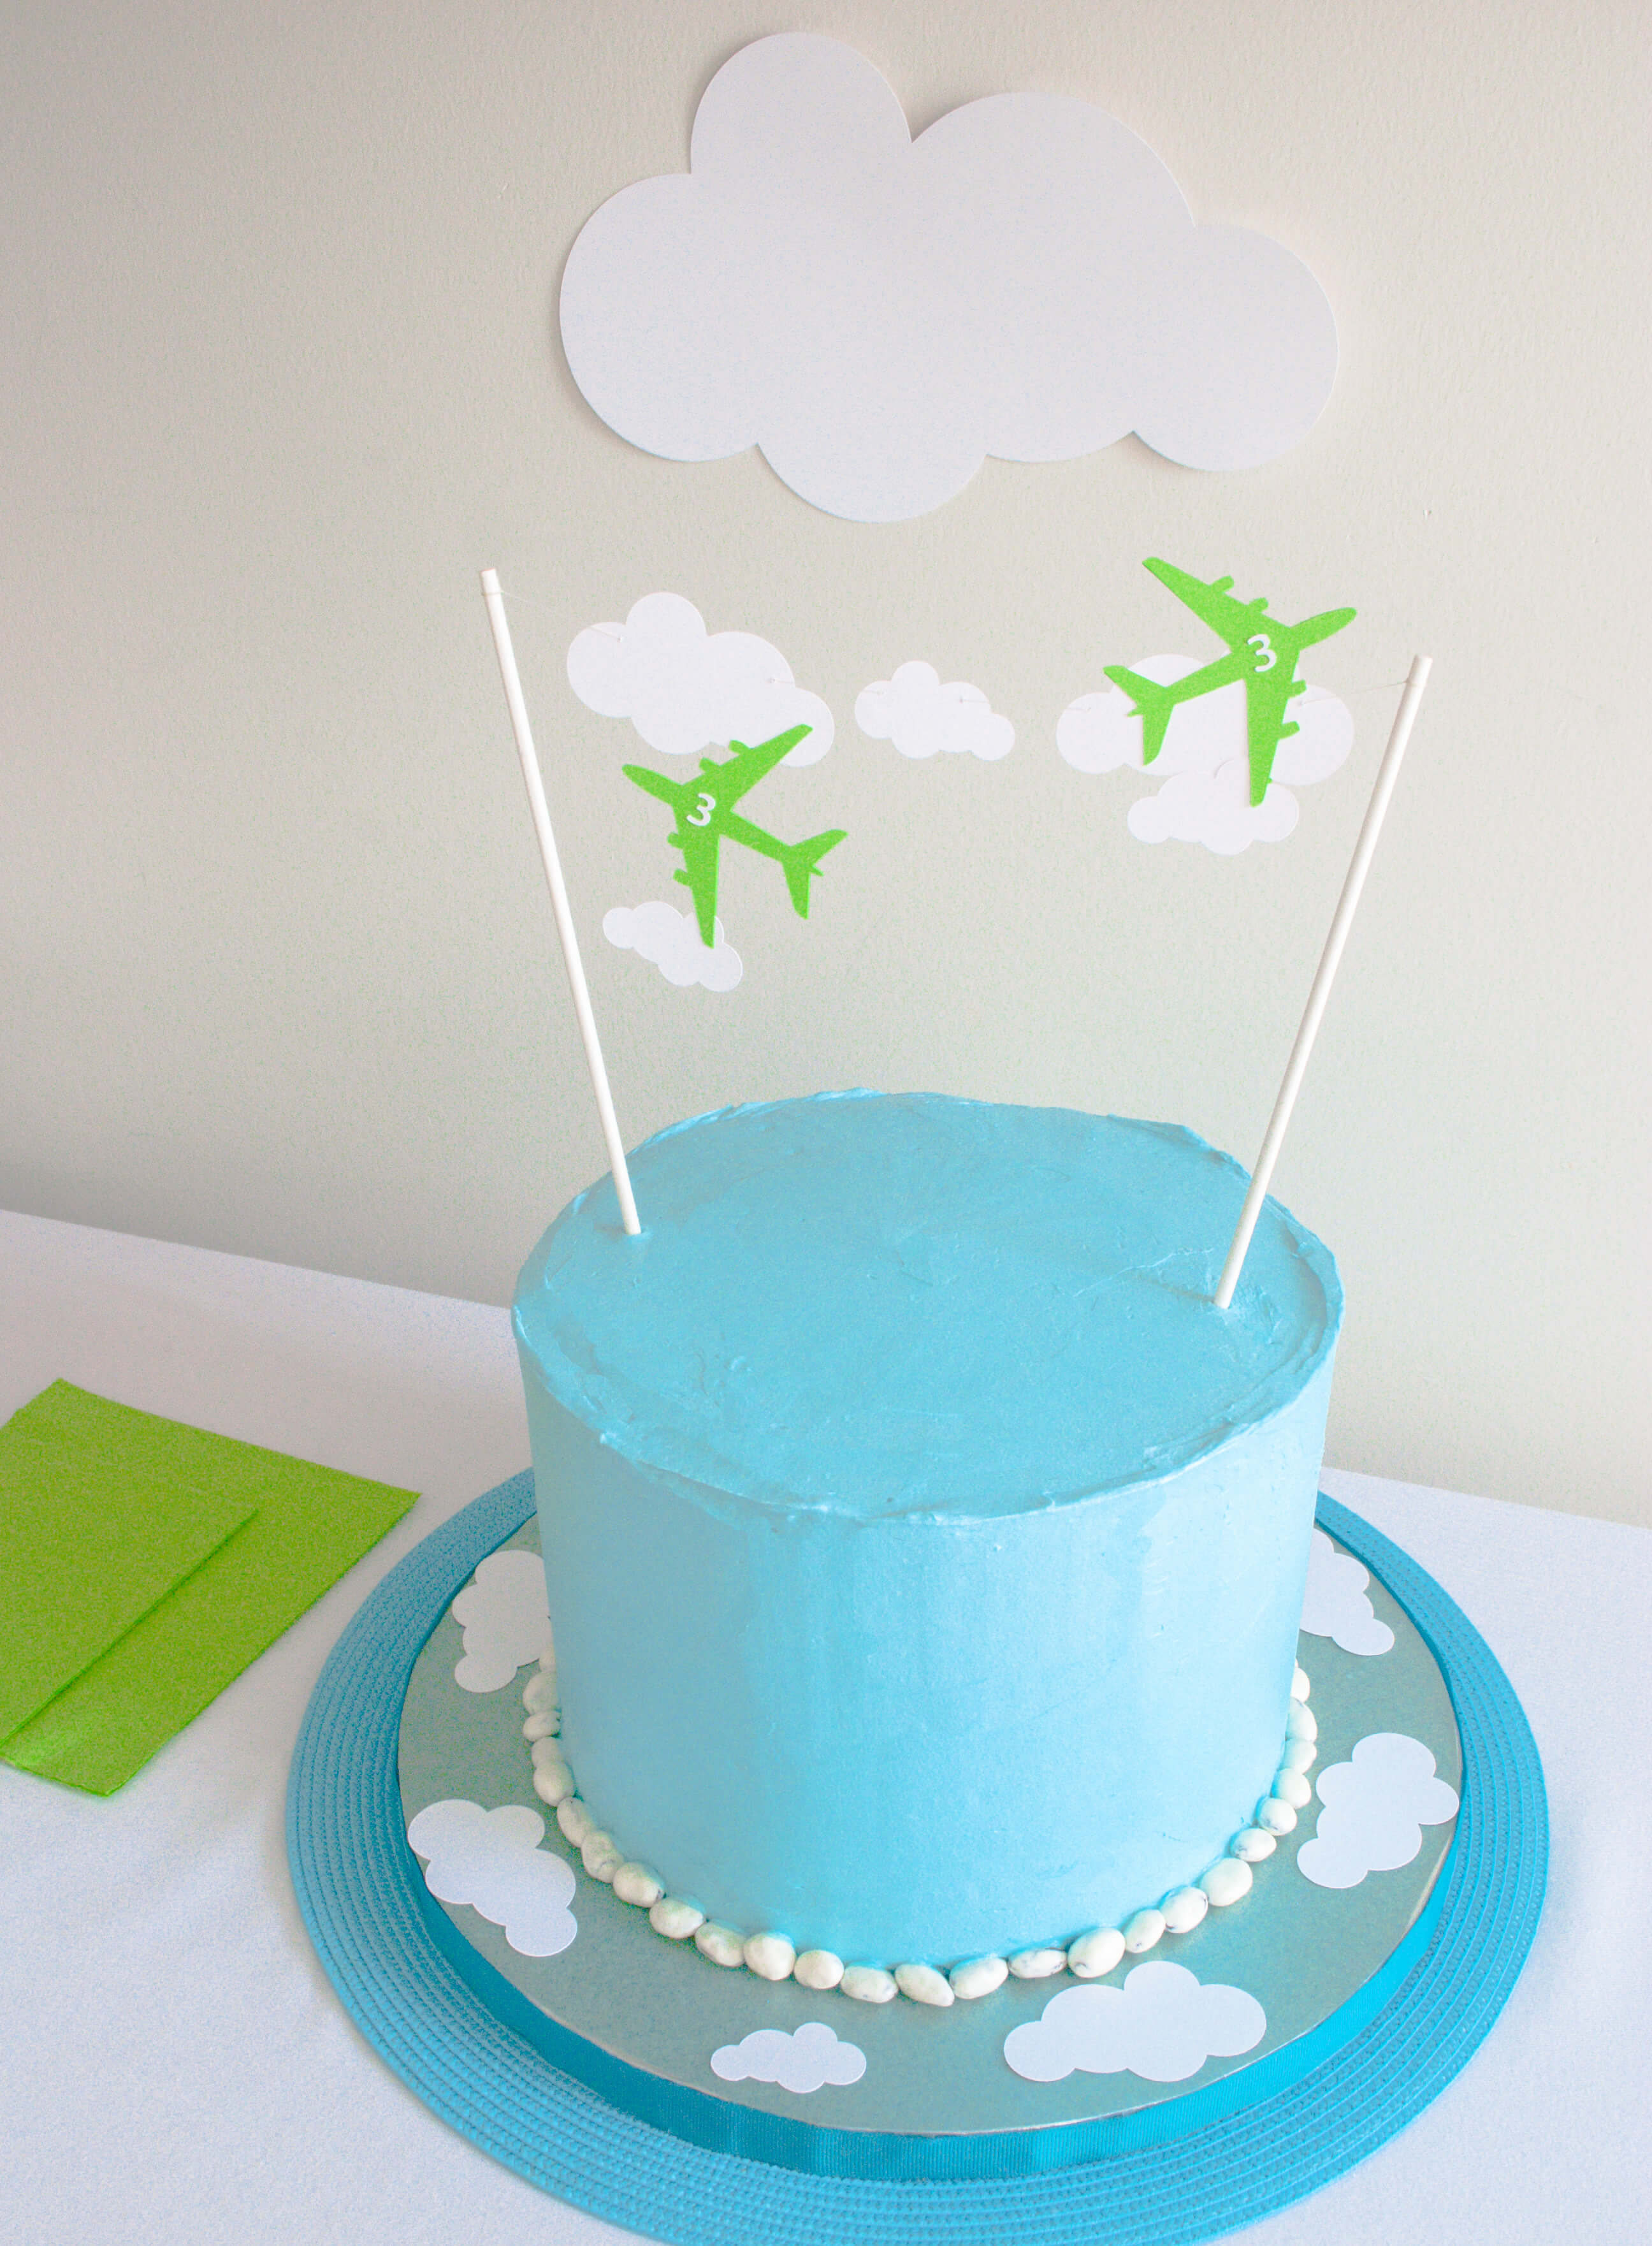 Easy Airplane Birthday Cake Plus Free Printable Airplane And Cloud Cake Toppers